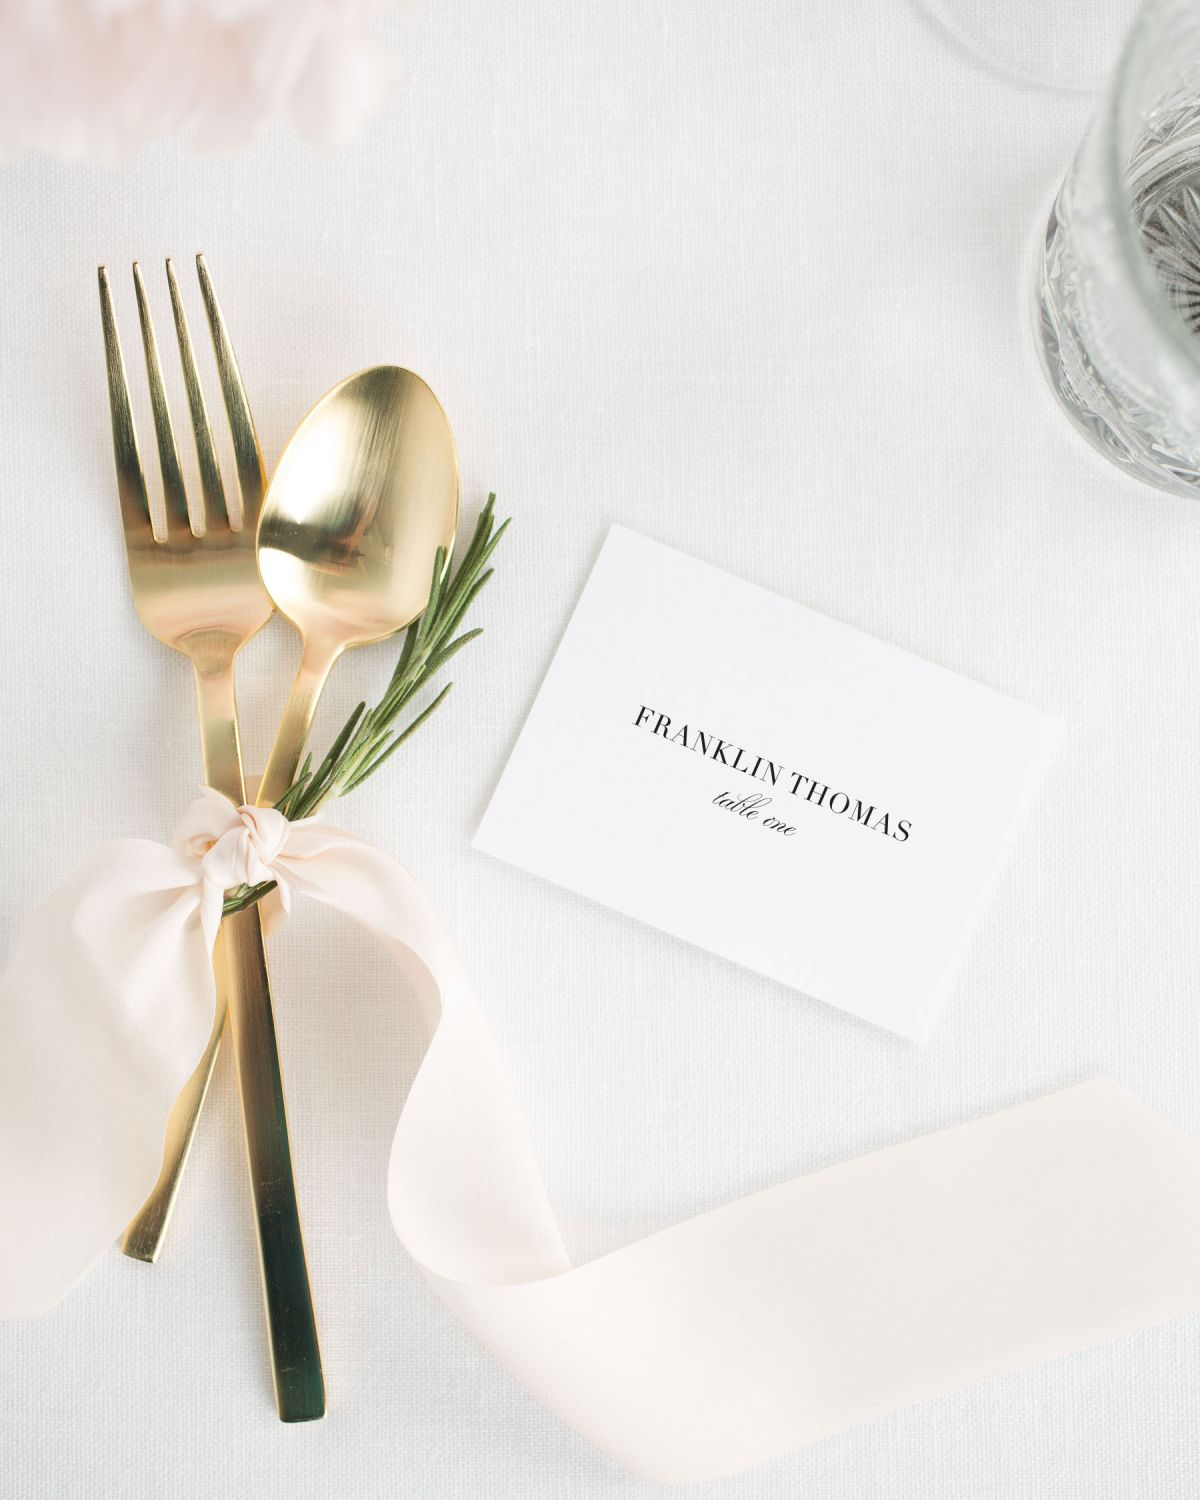 Glam Monogram place cards